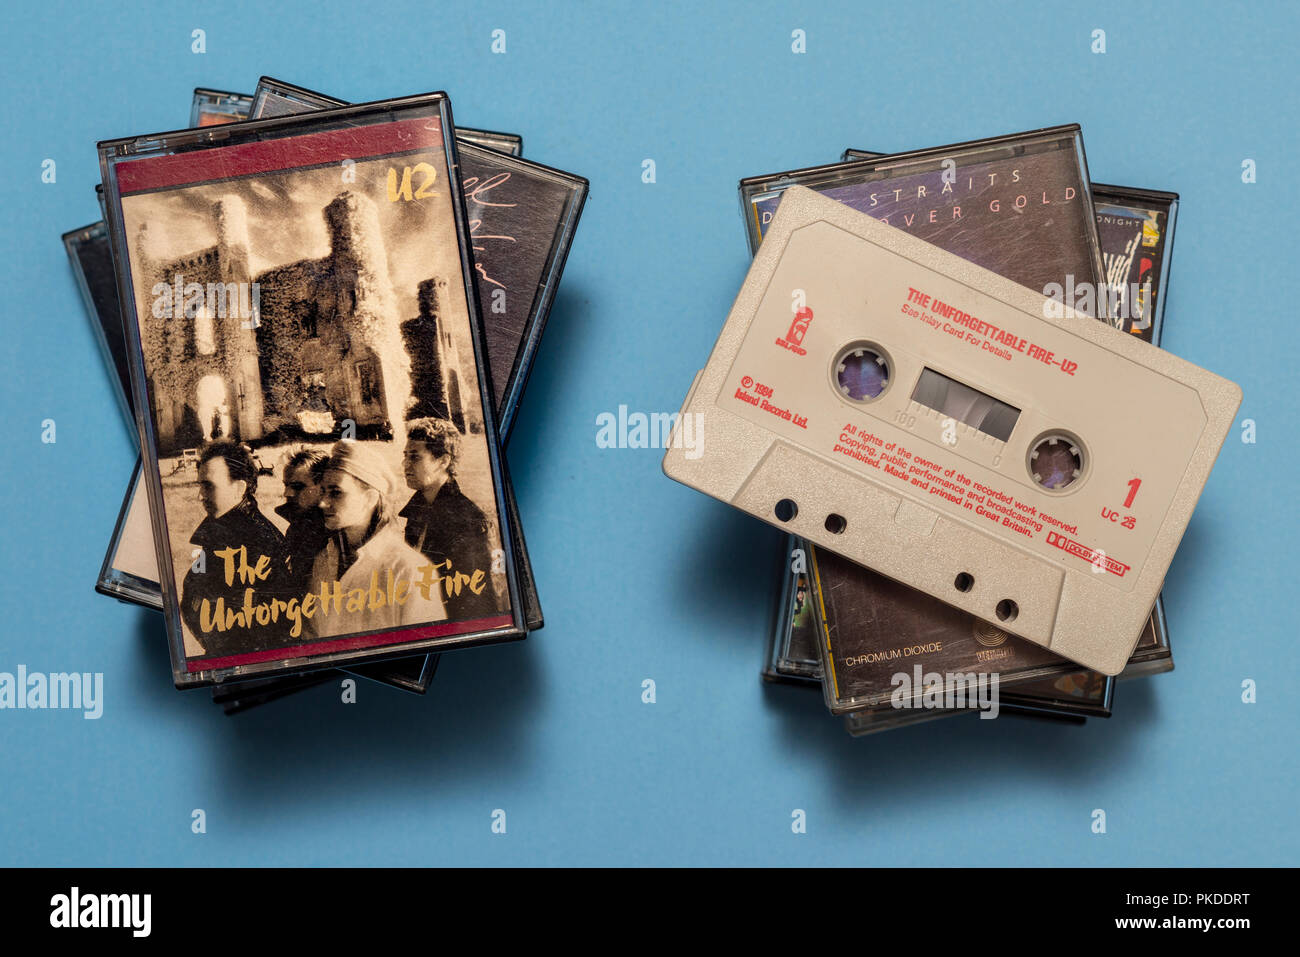 compact audio cassette of U2, Unforgetable Fire album with art work. - Stock Image